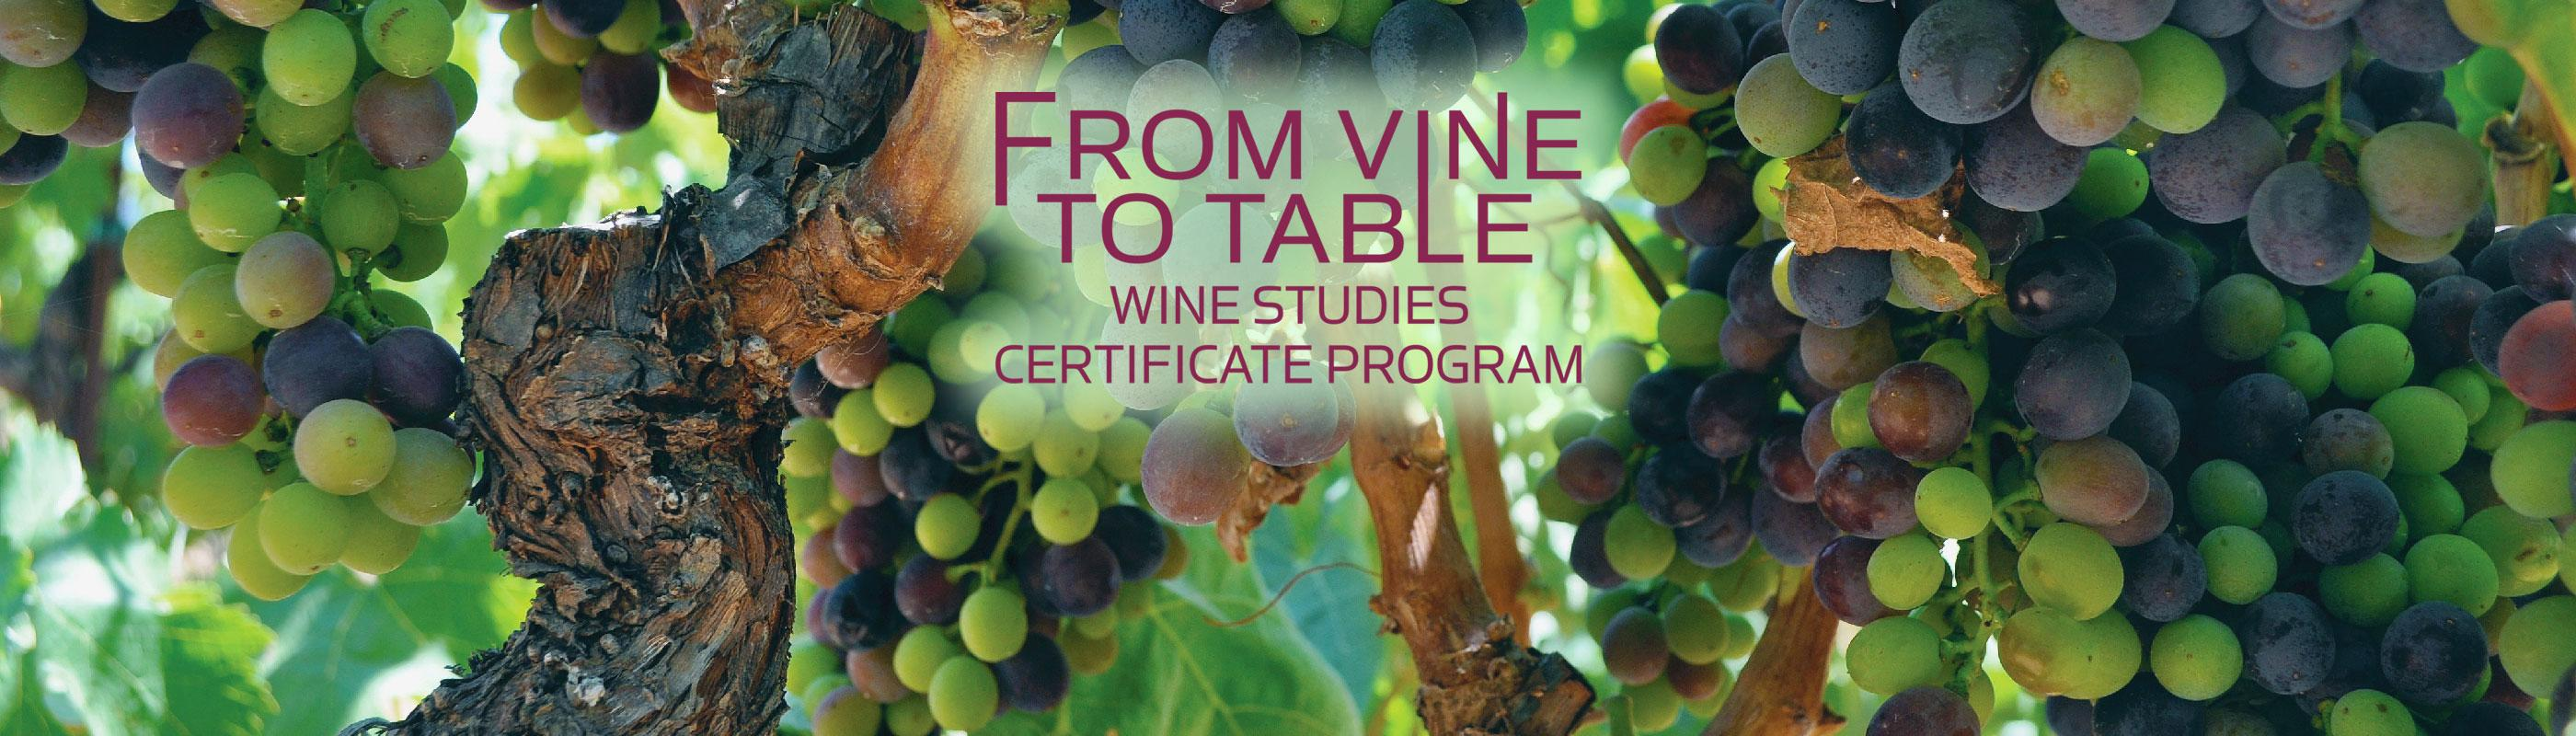 From Vine to Table Wine Studies Certificate Program